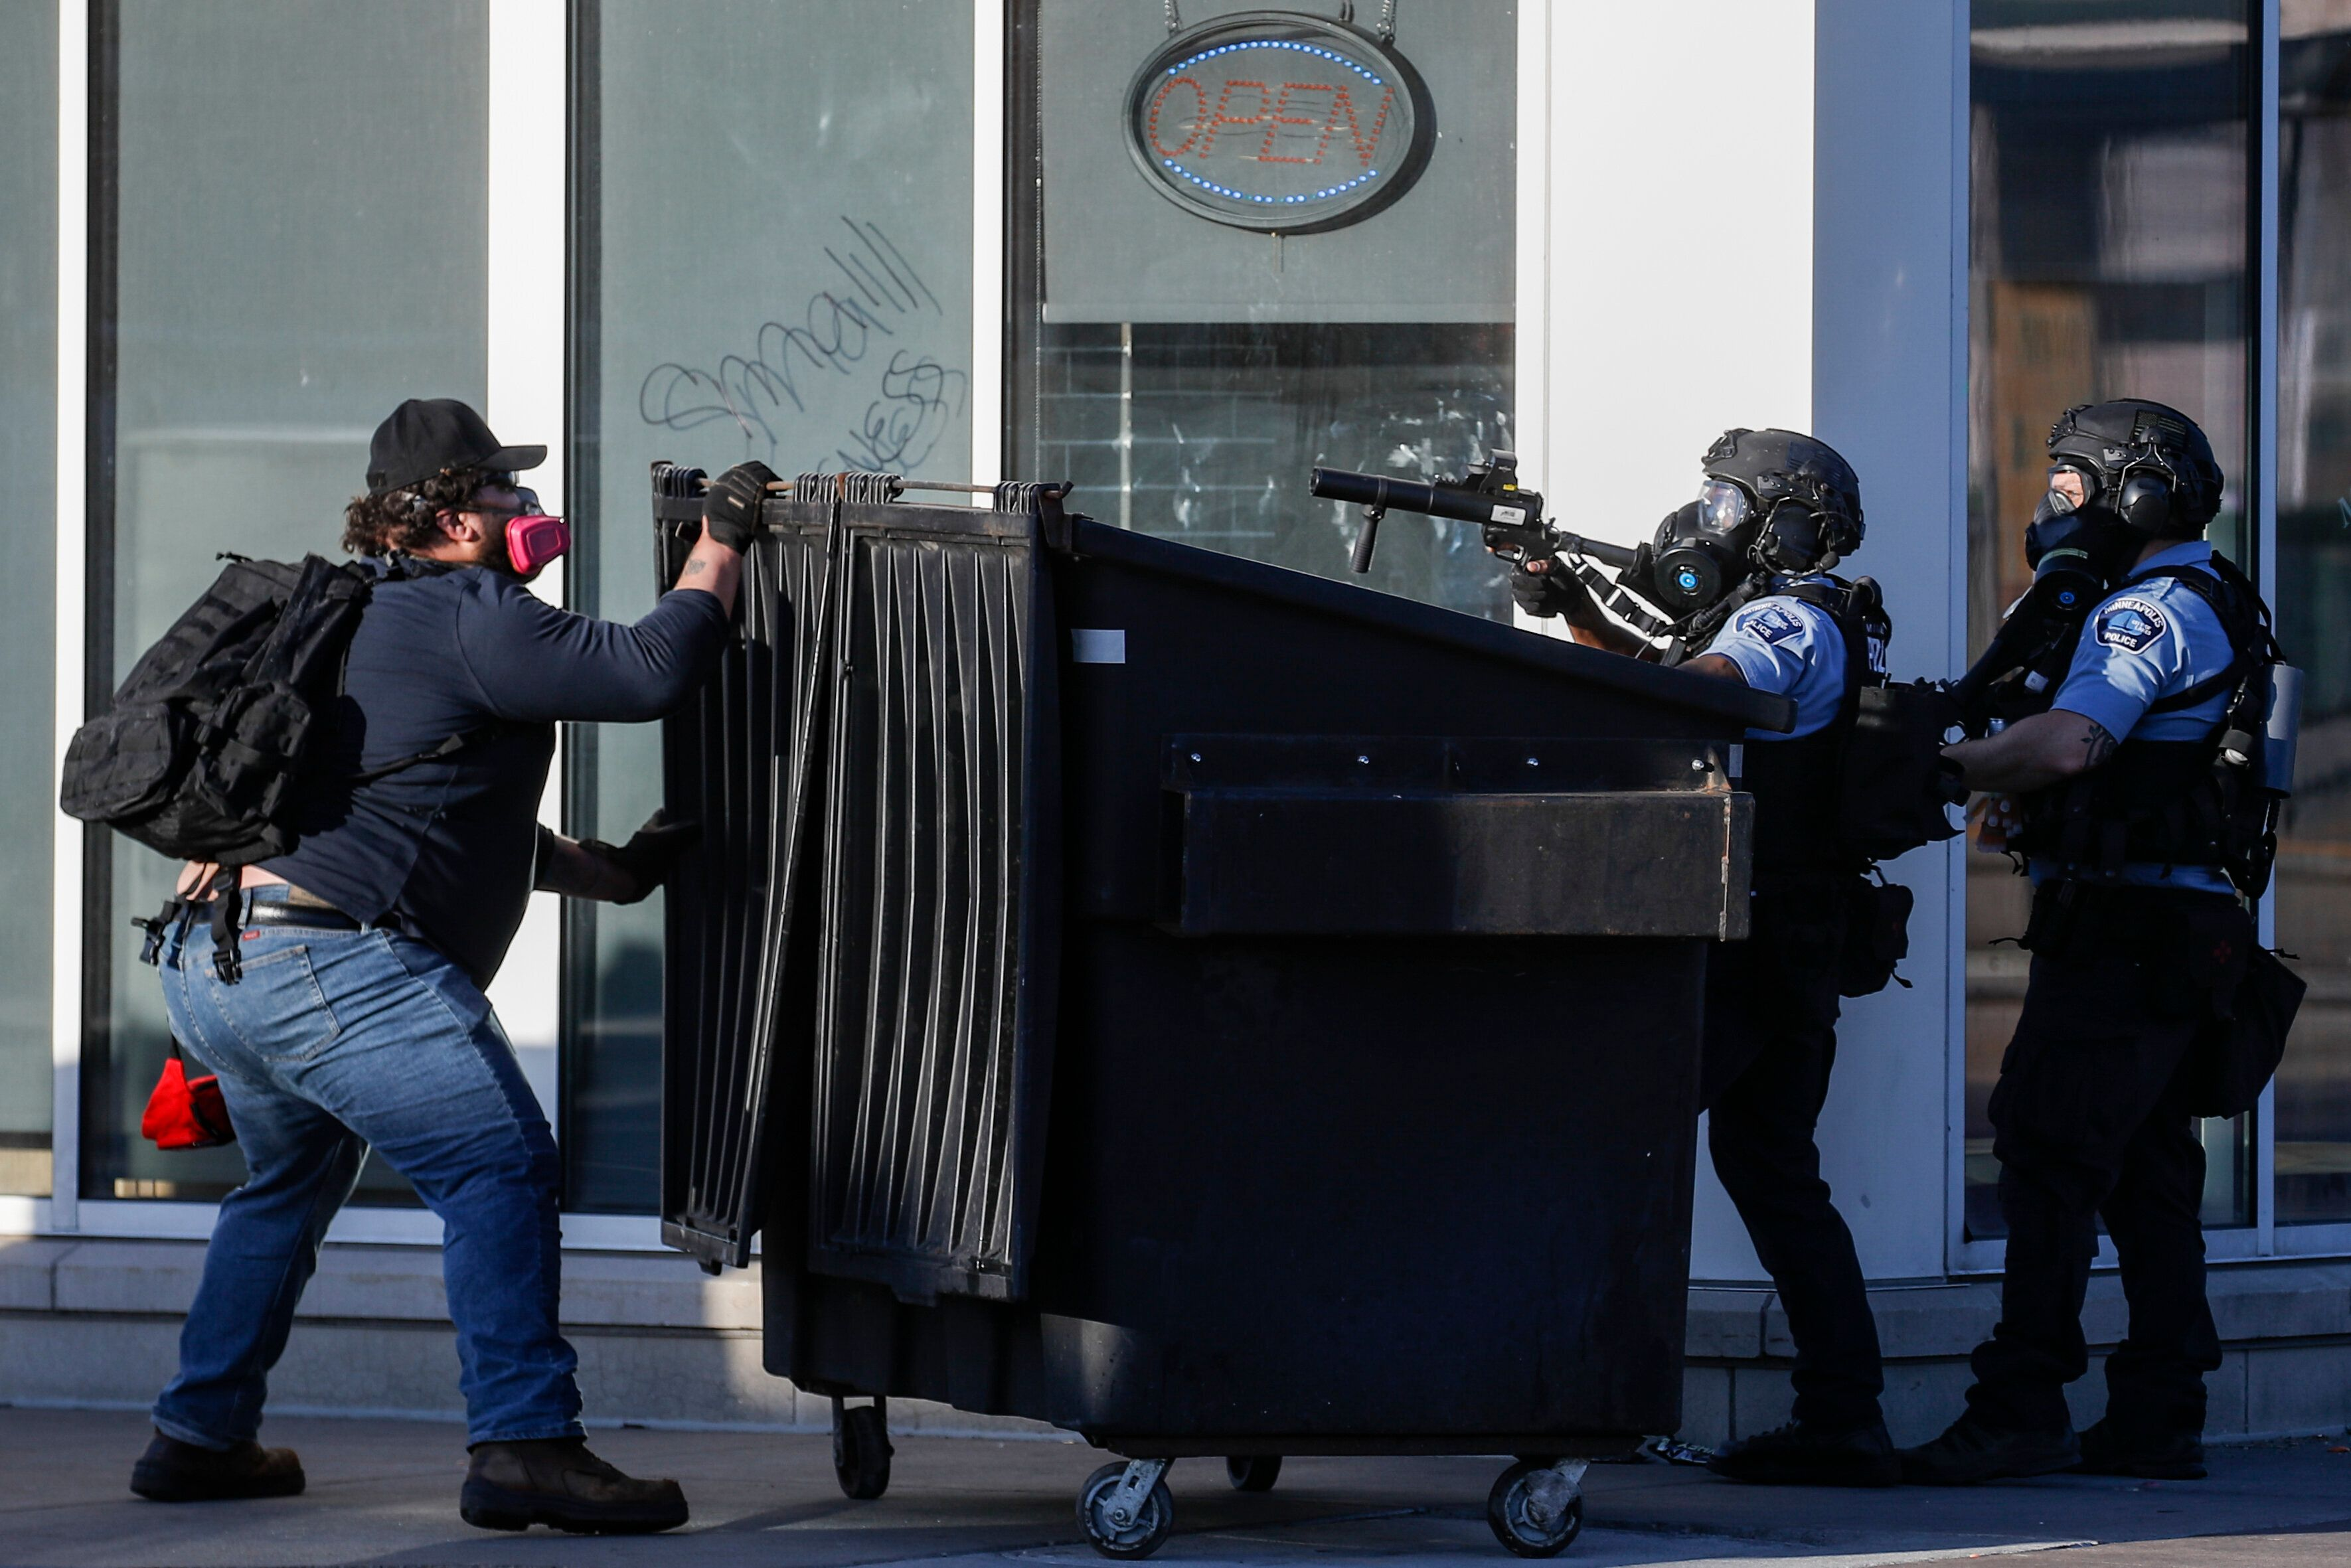 A protestor faces off with two police officers using less-lethal ammunition in their weapons, Thursday, May 28, 2020, in St.